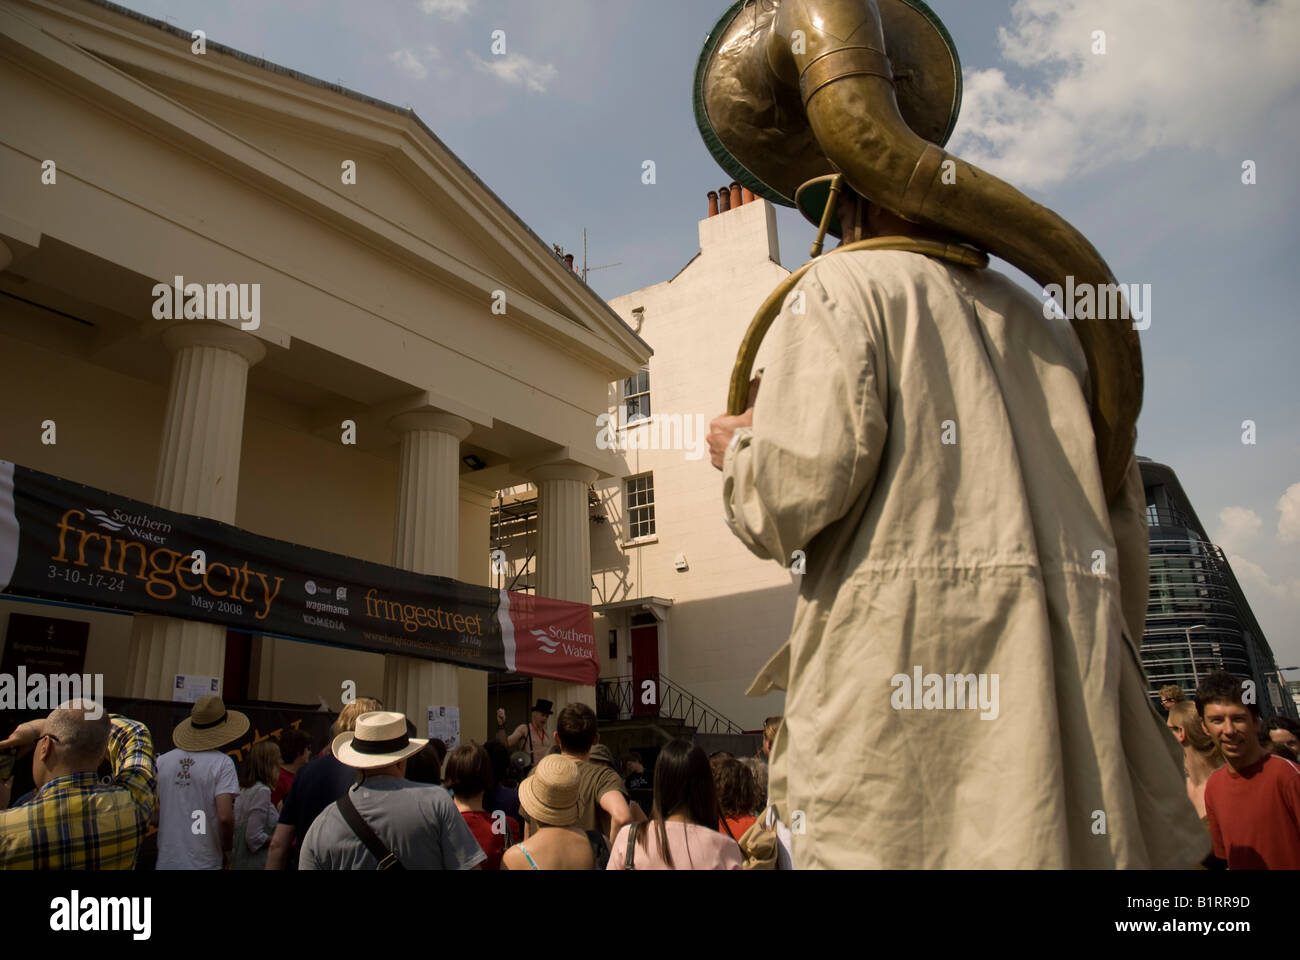 A street performer at the Brighton fringe theatre festival - Stock Image